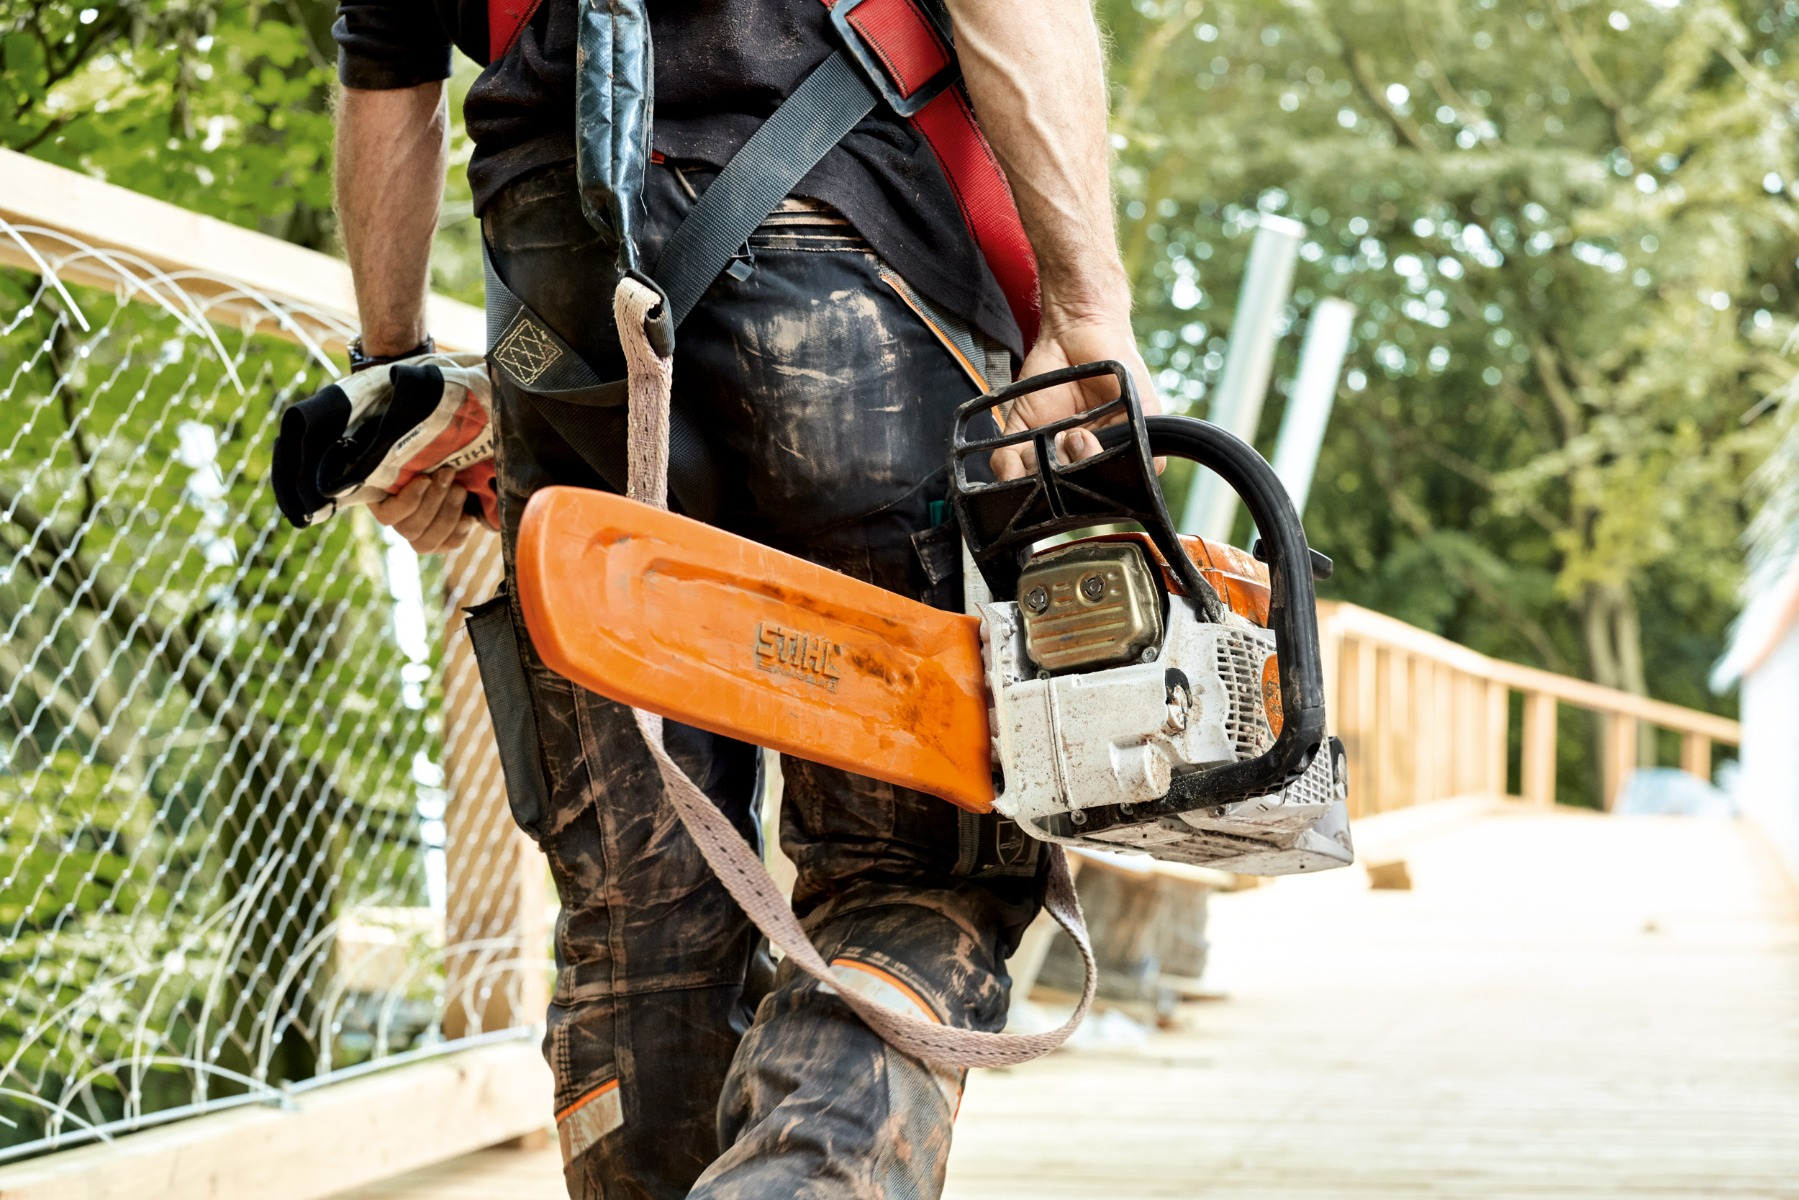 A man carrying his petrol Chainsaw pointed backward after chainsaw work